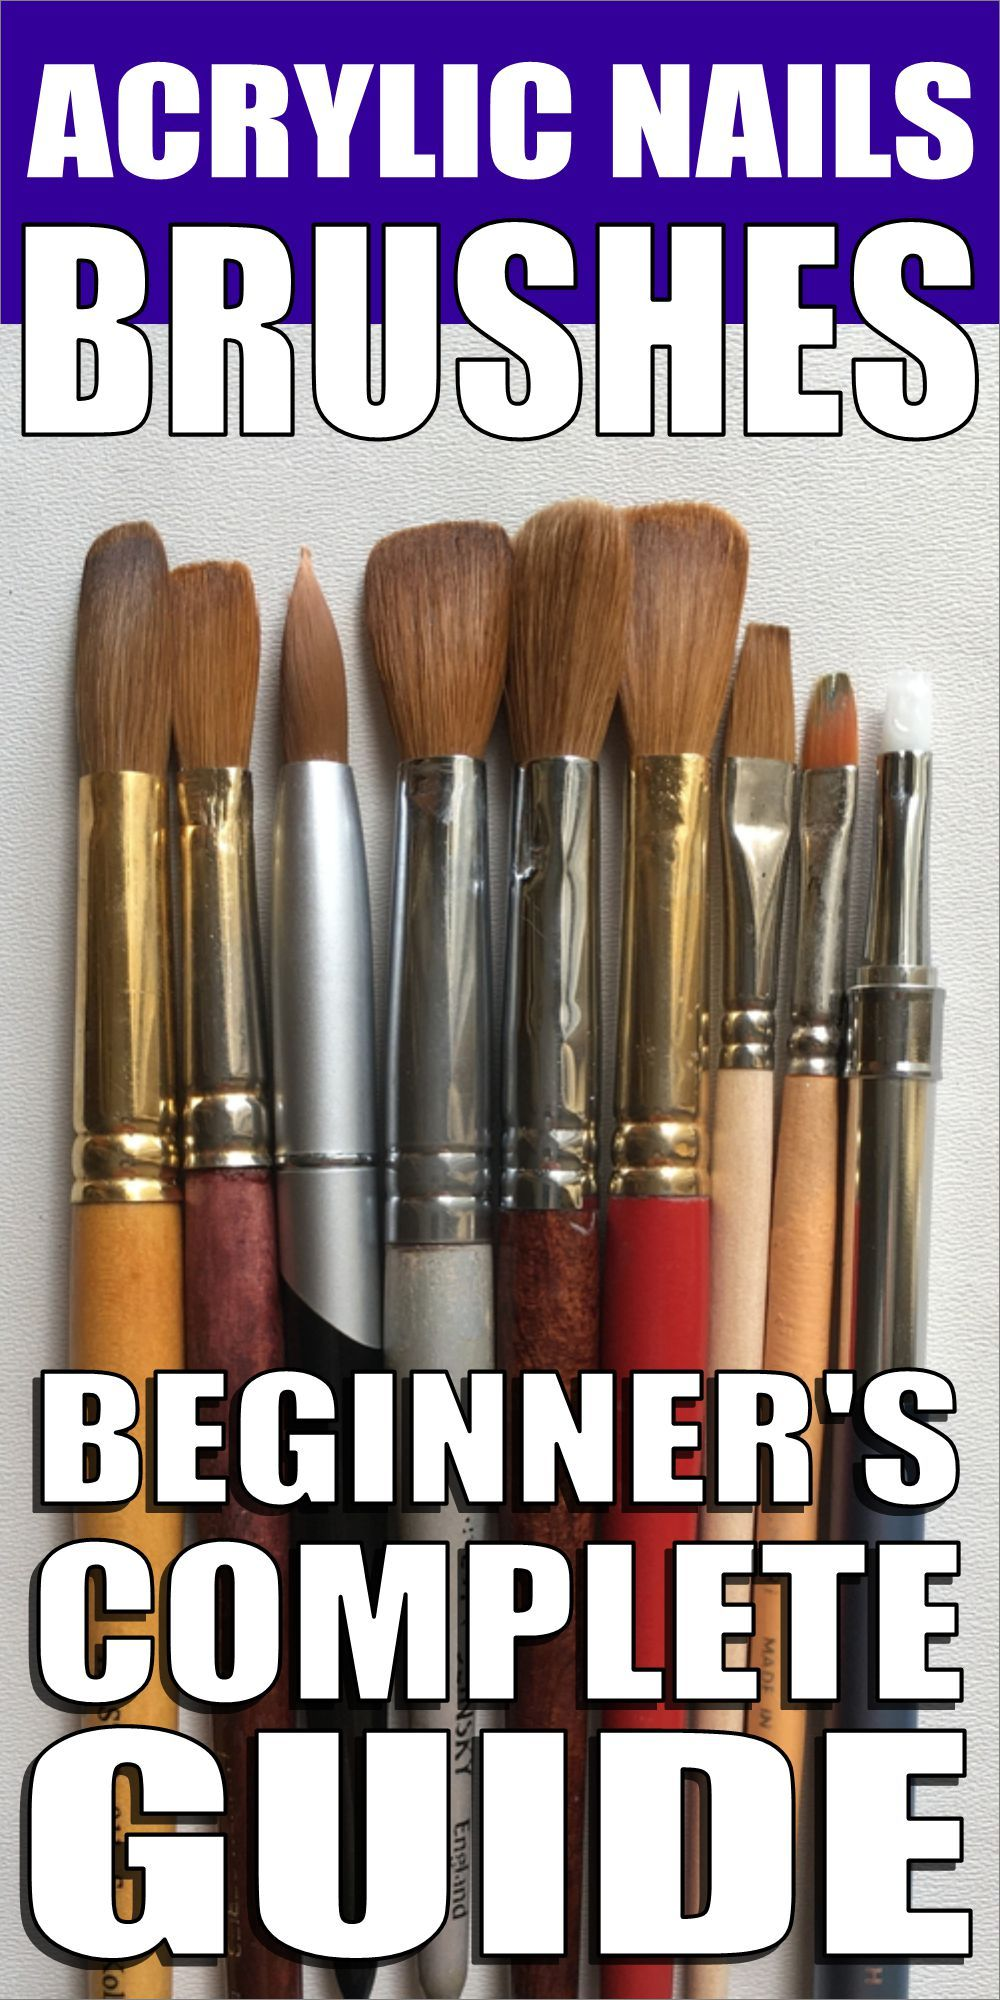 Acrylic nail brushes the beginners complete guide in